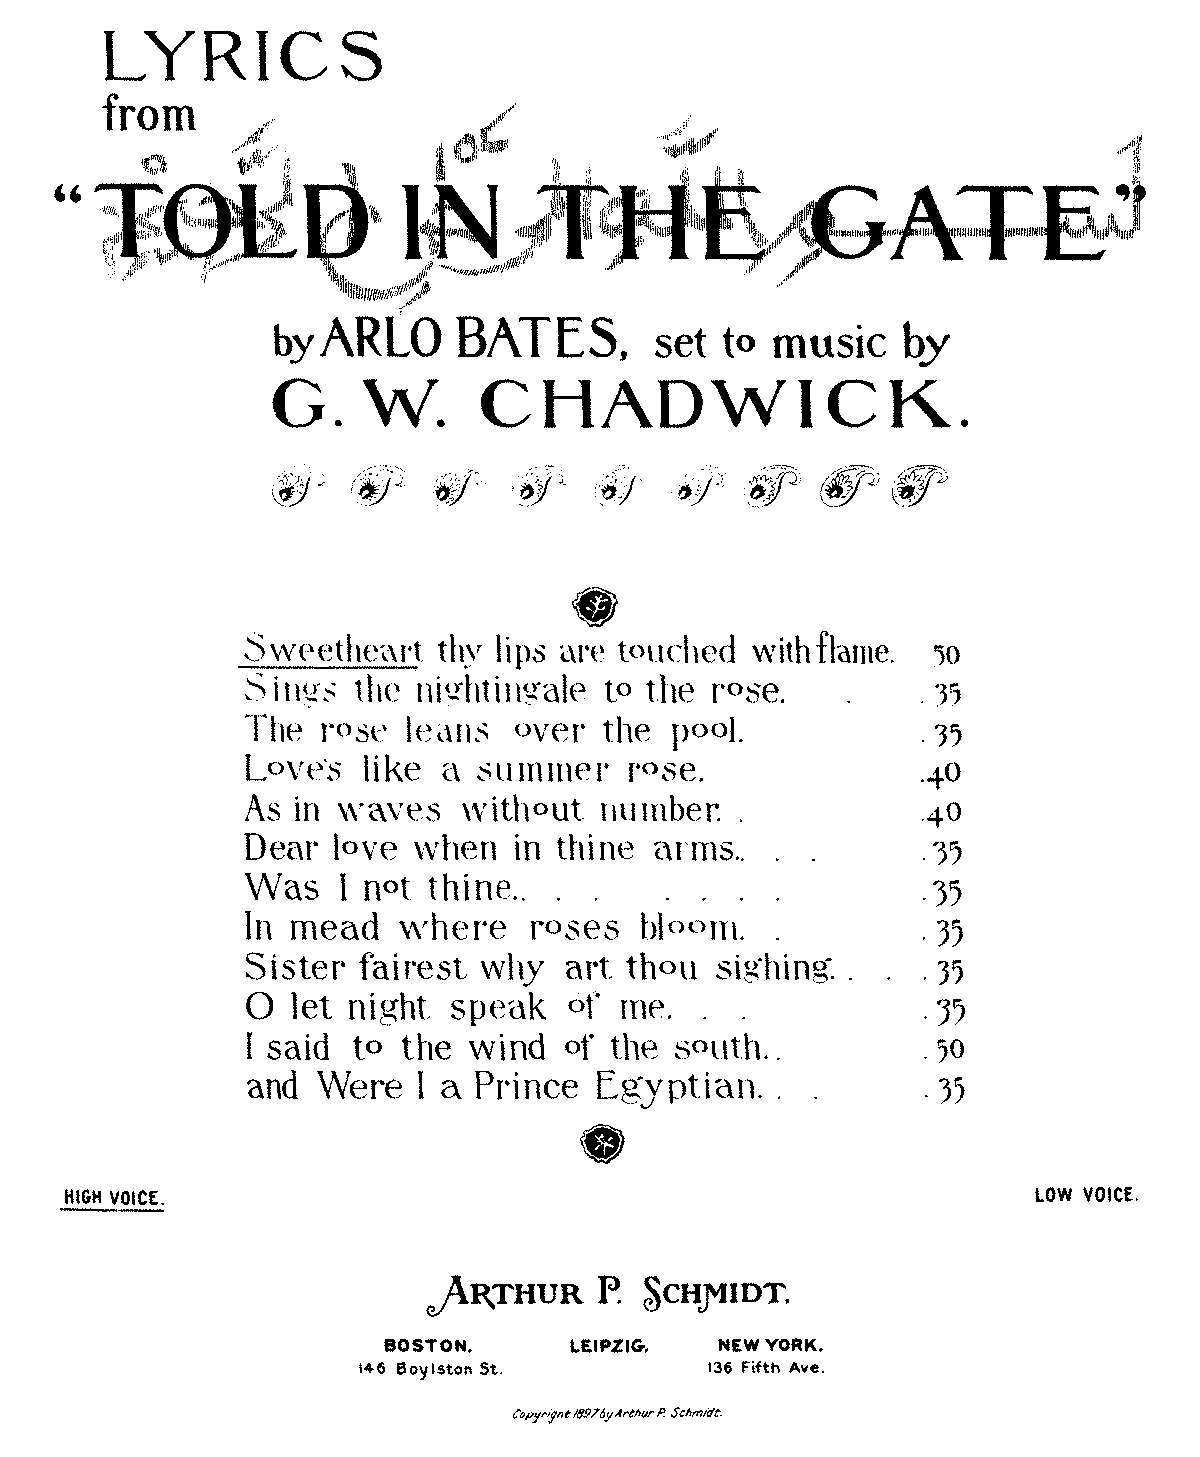 PMLP322374-GWChadwick Lyrics from Told in the Gate No.1 highvoice.pdf